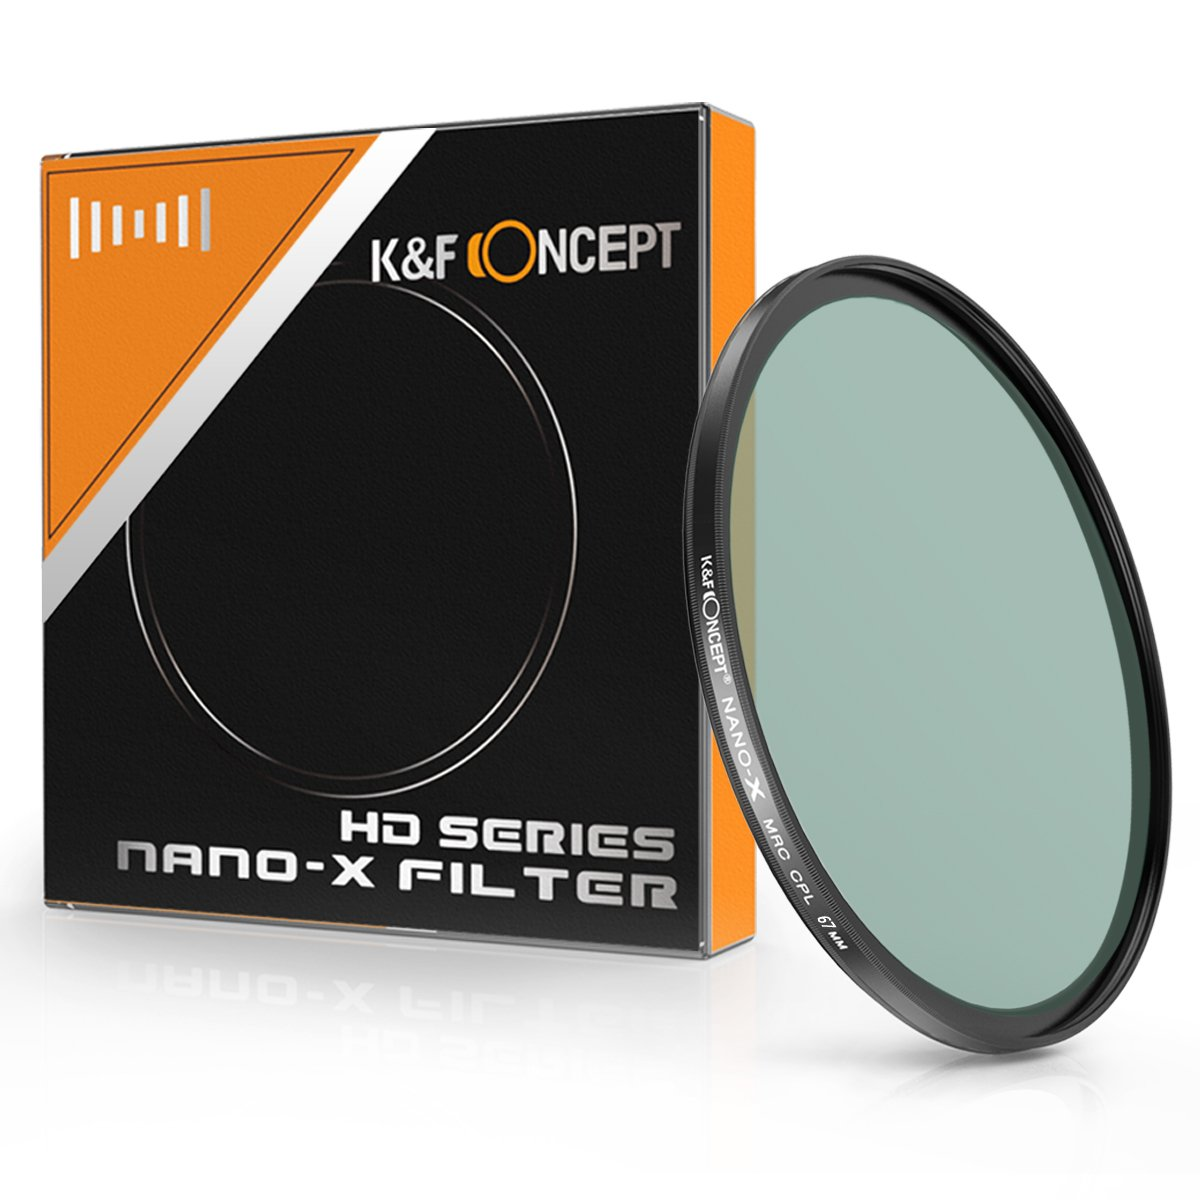 CPL Filter 67mm, K&F Concept 67MM Circular Polarizer Filter HD 18 Layer Super Slim Multi-Coated CPL Lens Filter Nano-X MRC Series Shenzhen Zhuoer Photograph KF01.881